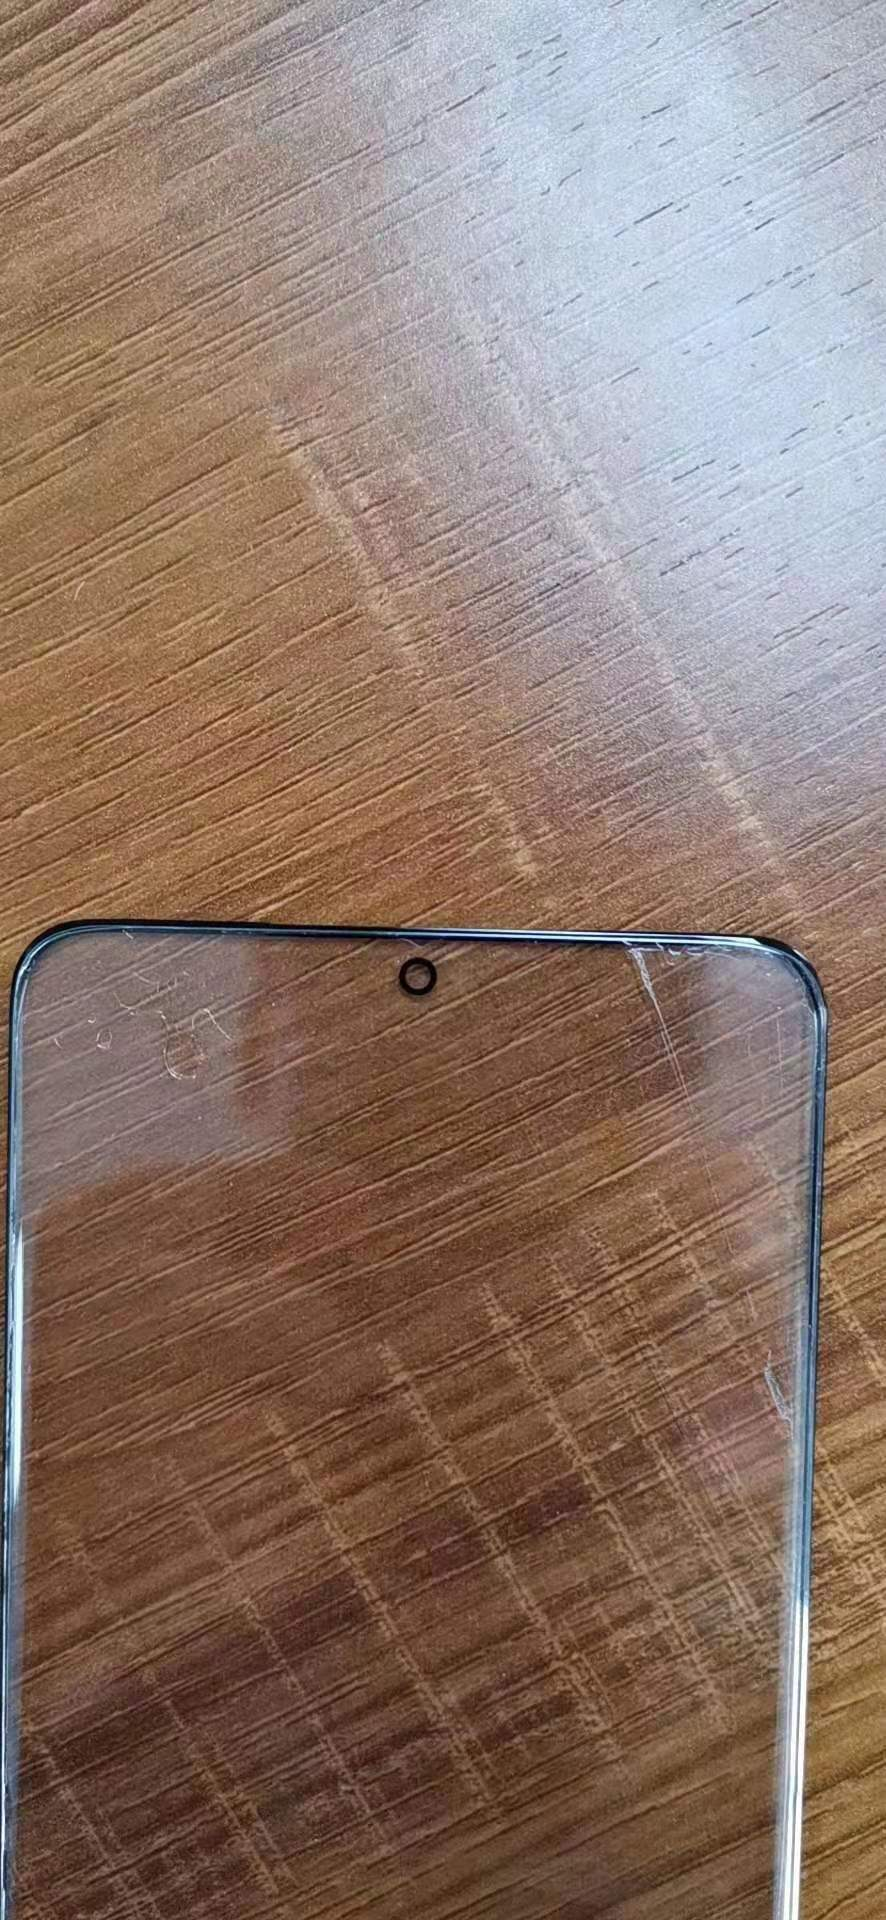 Galaxy S11's glass screen has leaked, showing smaller bezels and hole punch - TalkAndroid